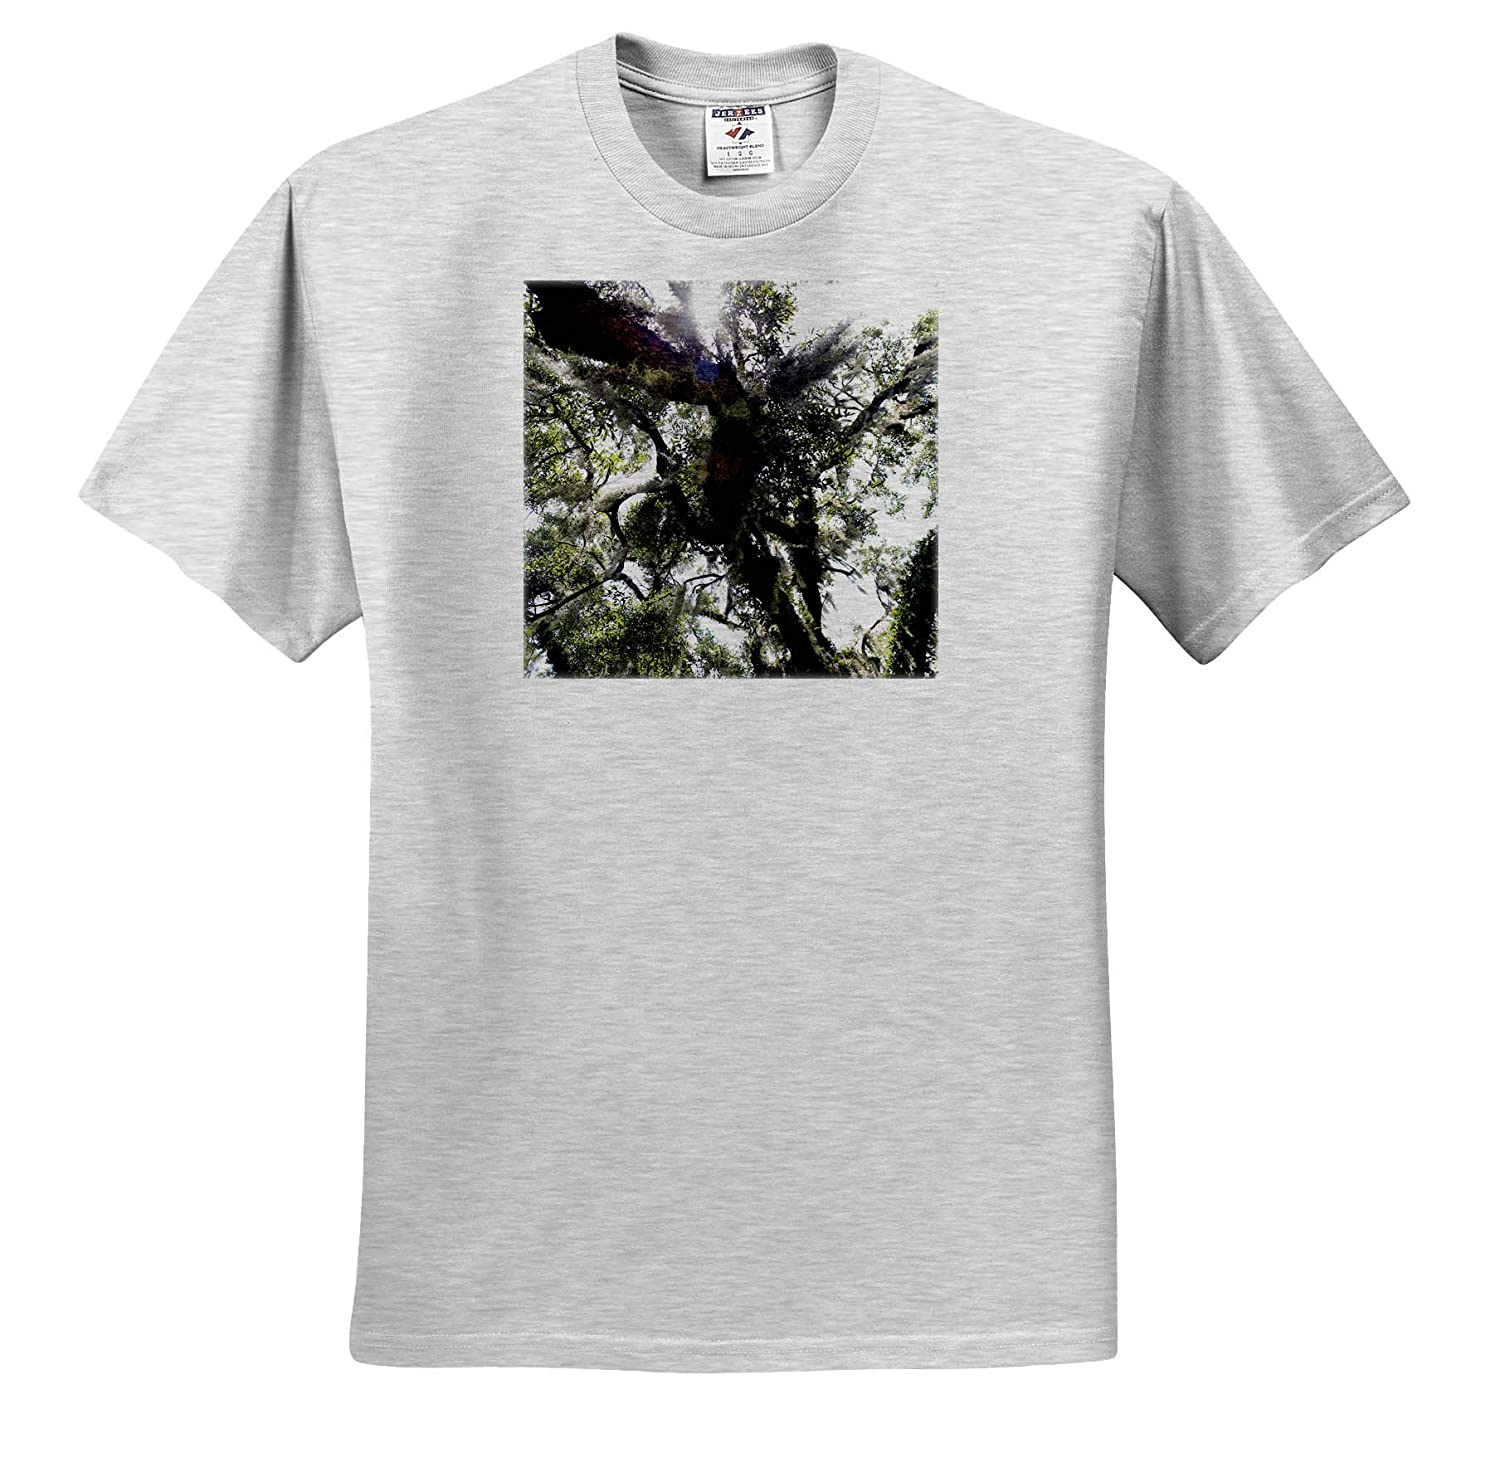 - T-Shirts Nature 3dRose Stamp City Photograph of The Underside of an Old Oak Tree with Spanish Moss